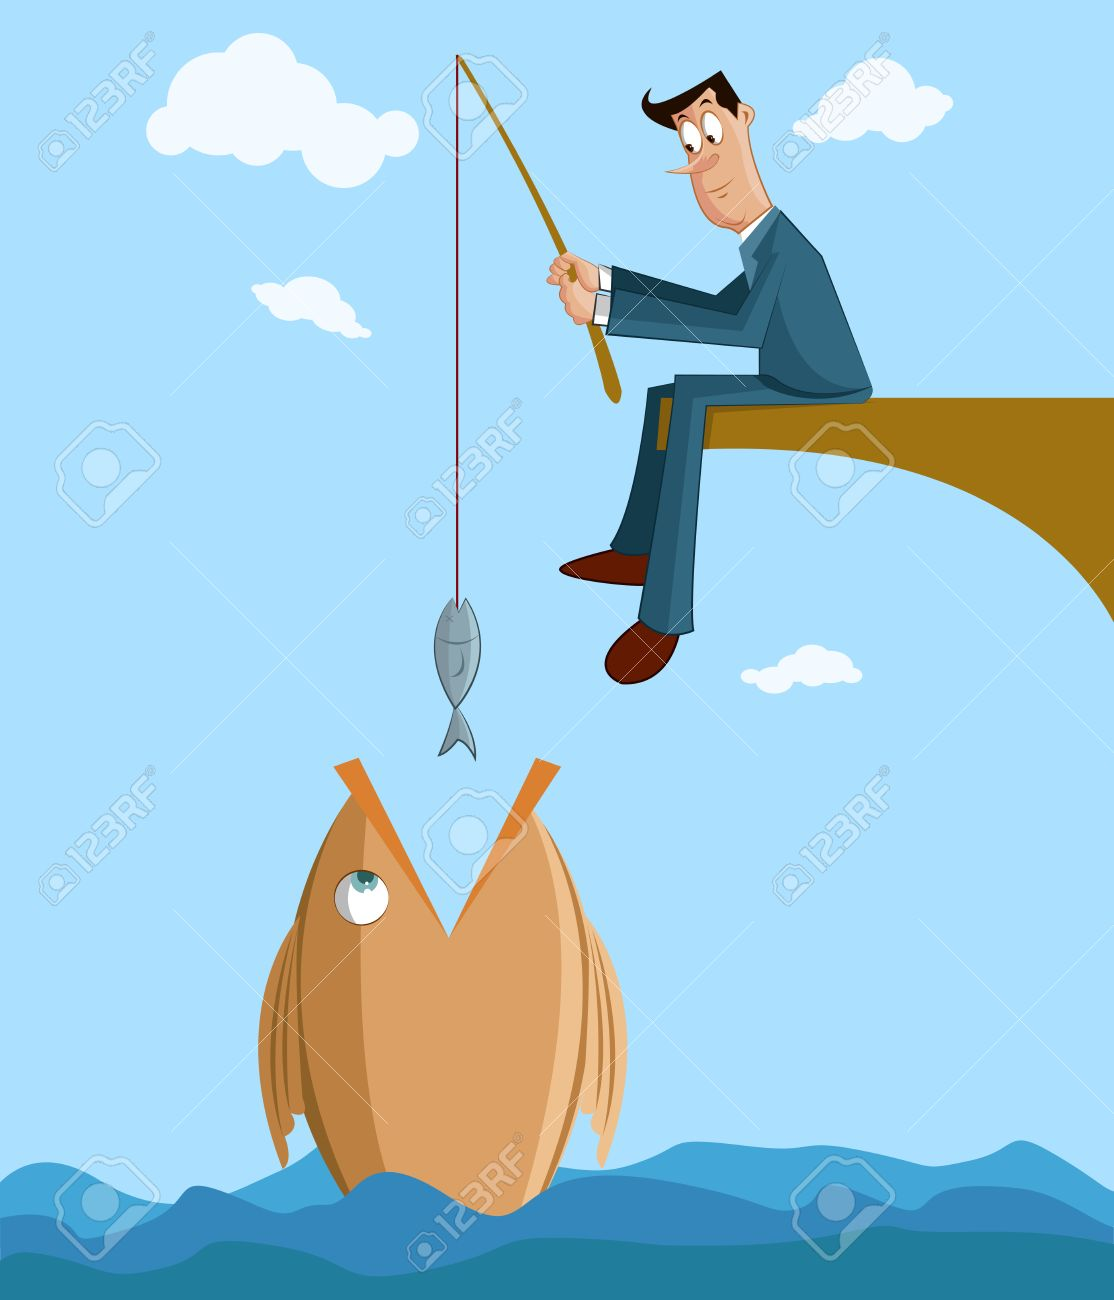 businessman catching big fish with small fish in fishing rod, Fishing Rod